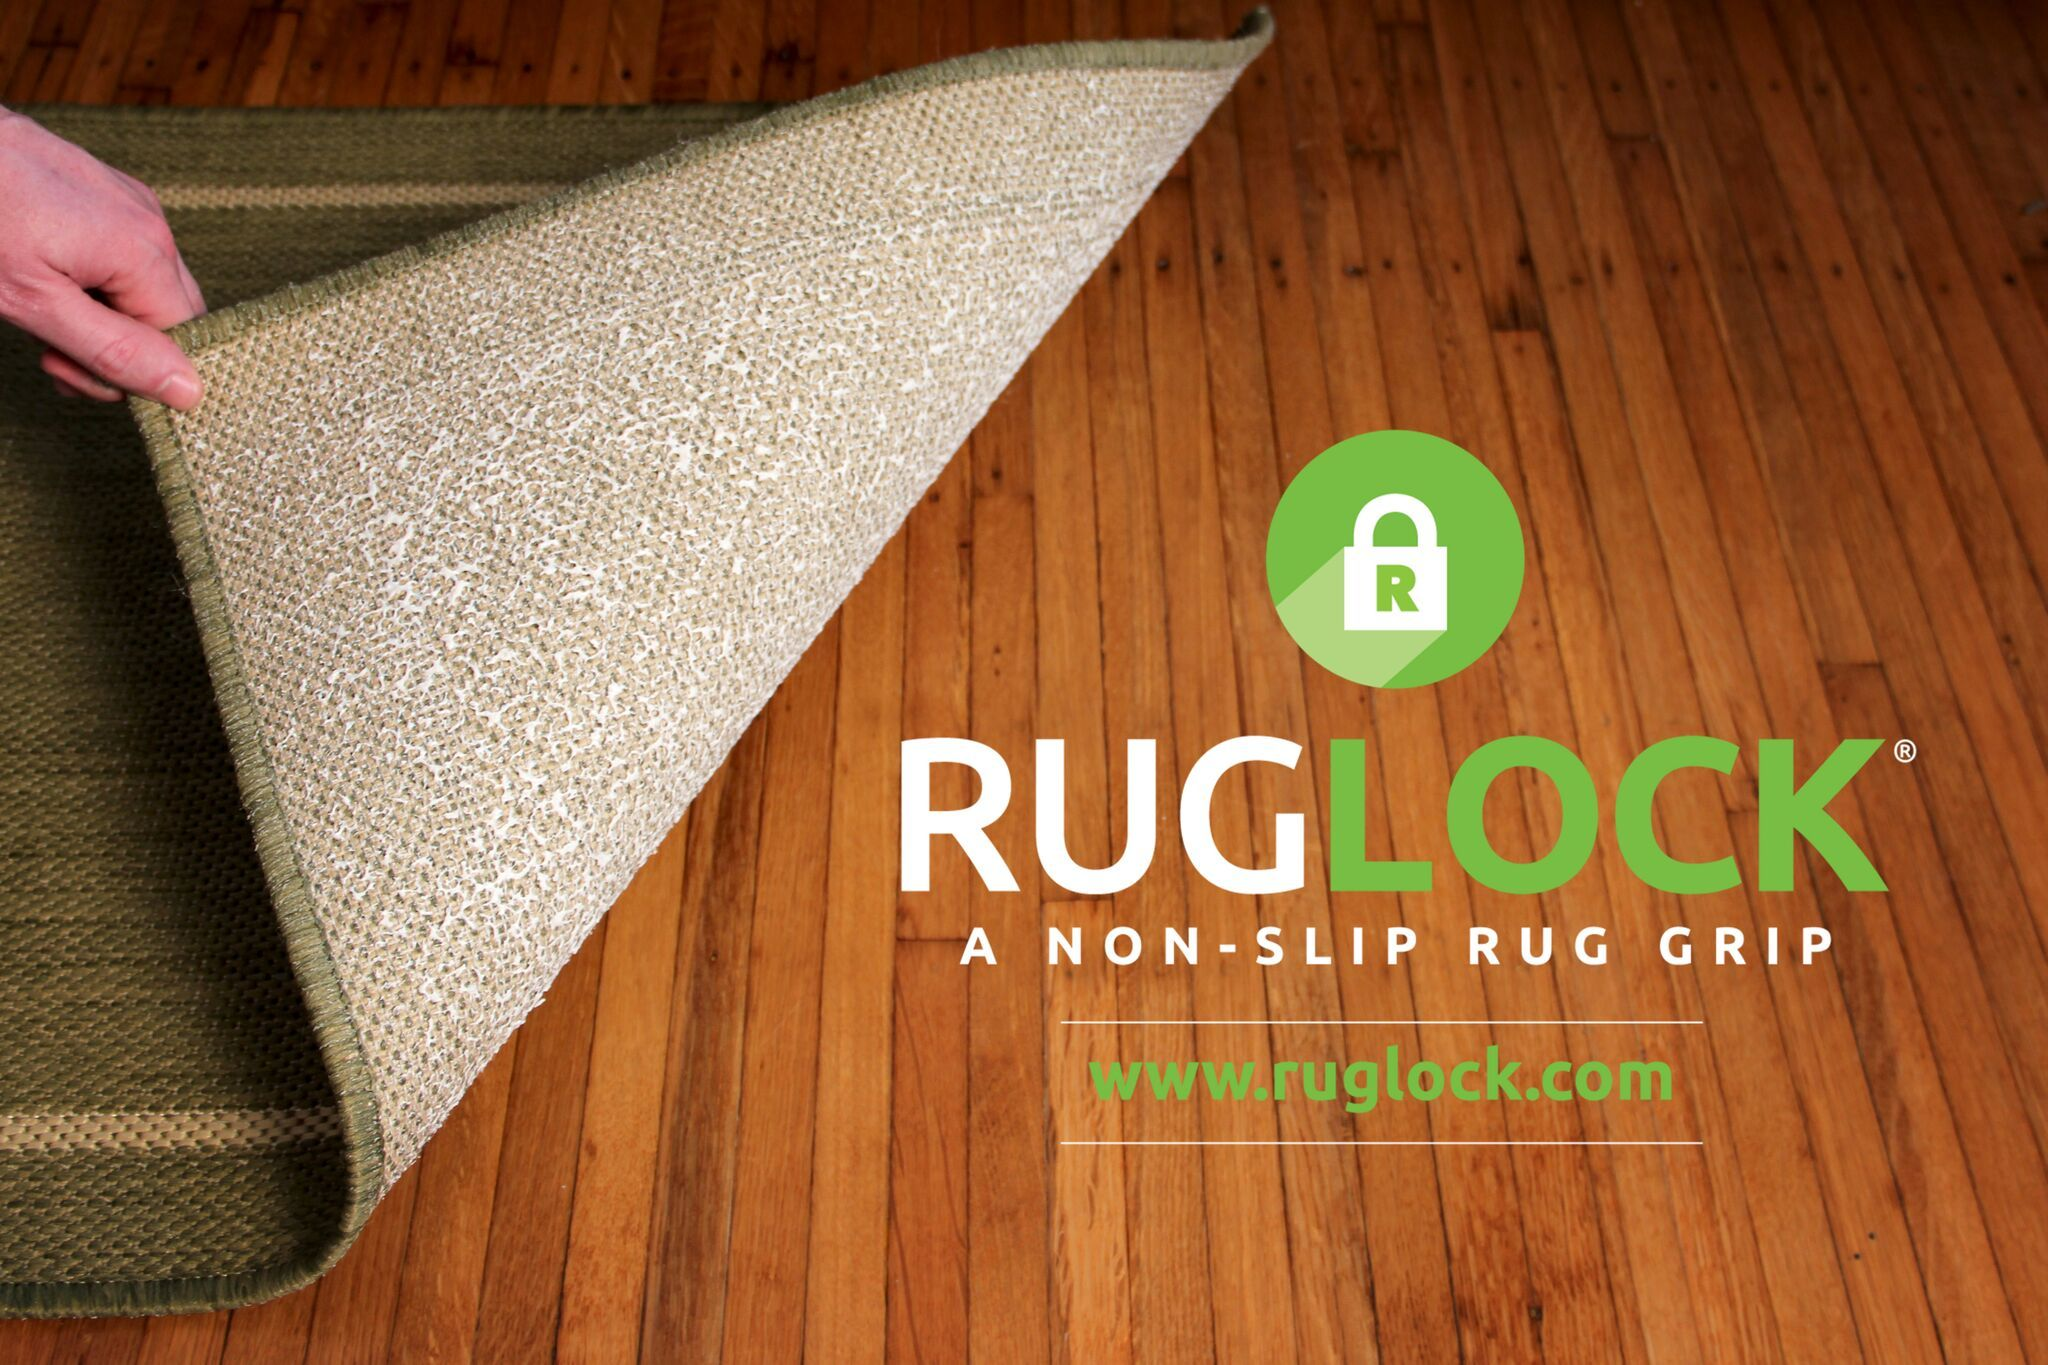 Ruglock Is More Than Just About Locking Your Area Rugs Into Place